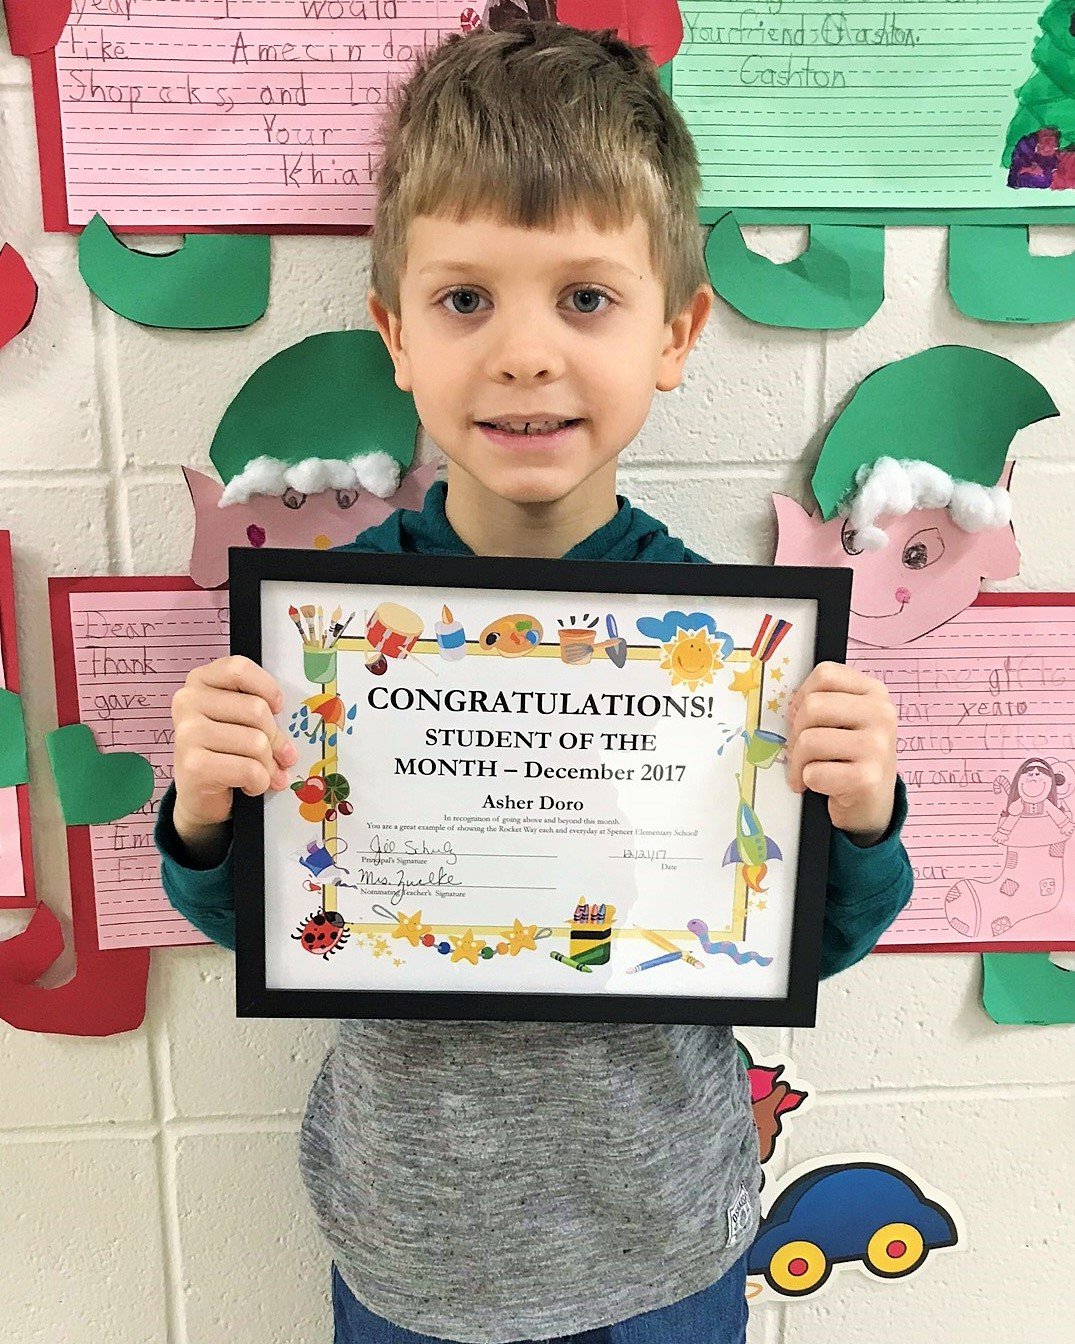 Student of the Month for December